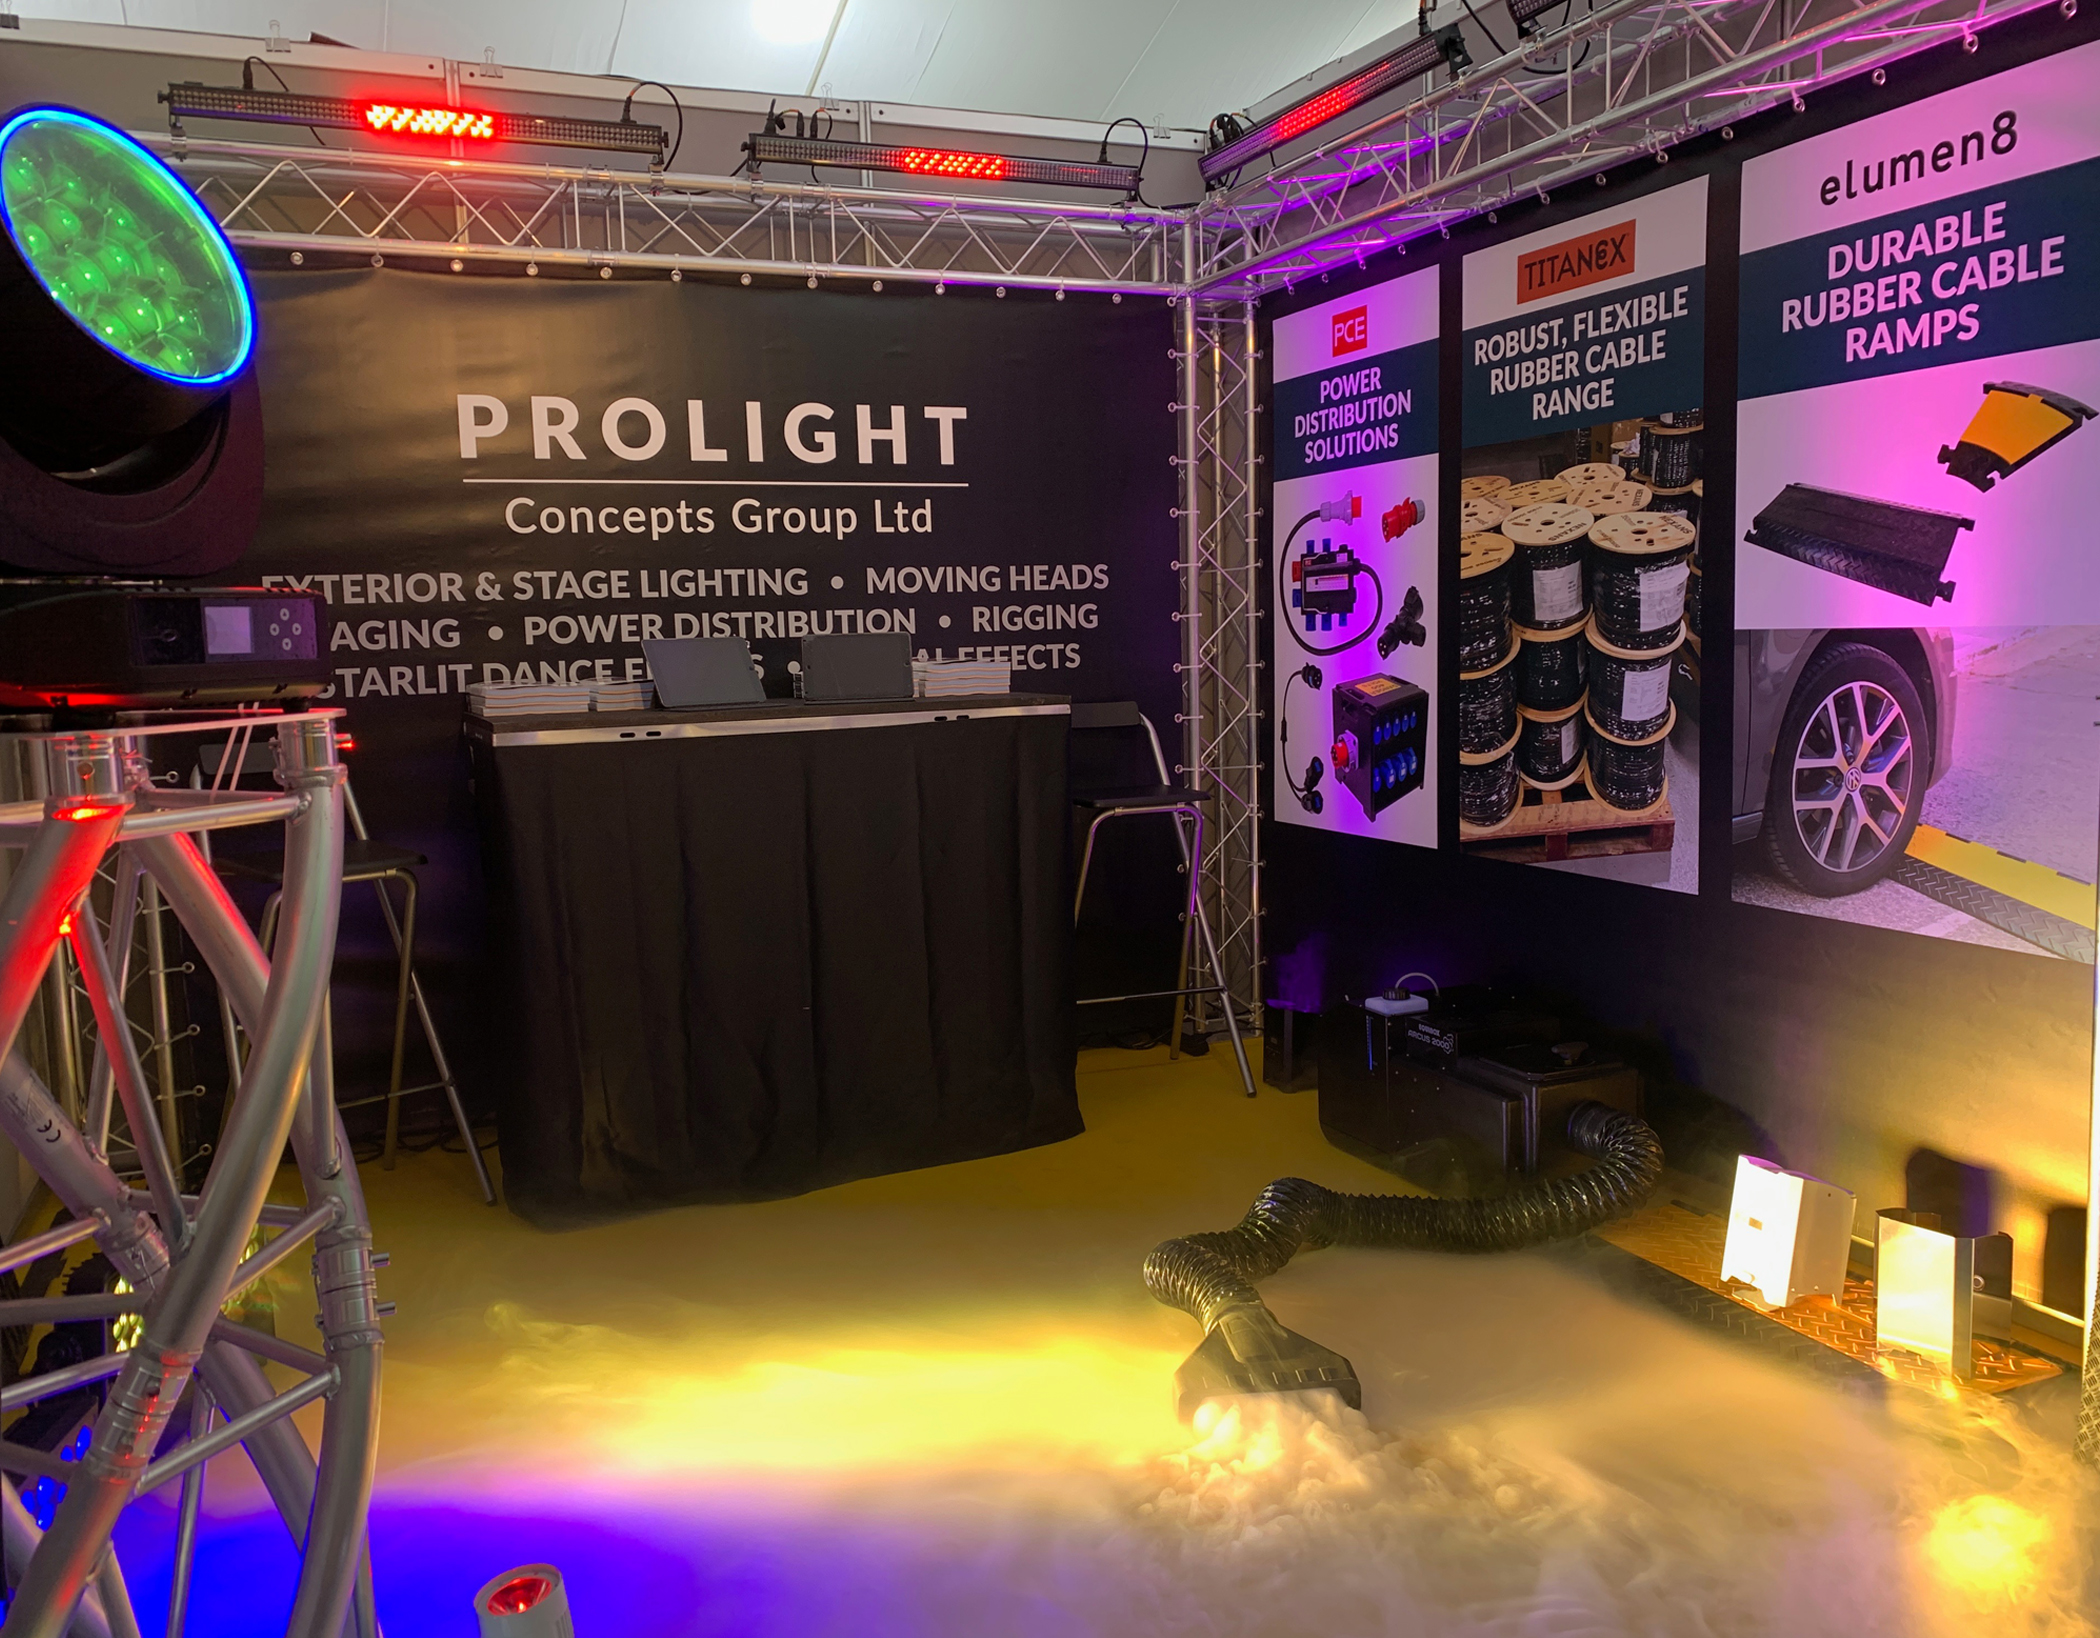 The Prolight Concepts group stand at The Showman Show